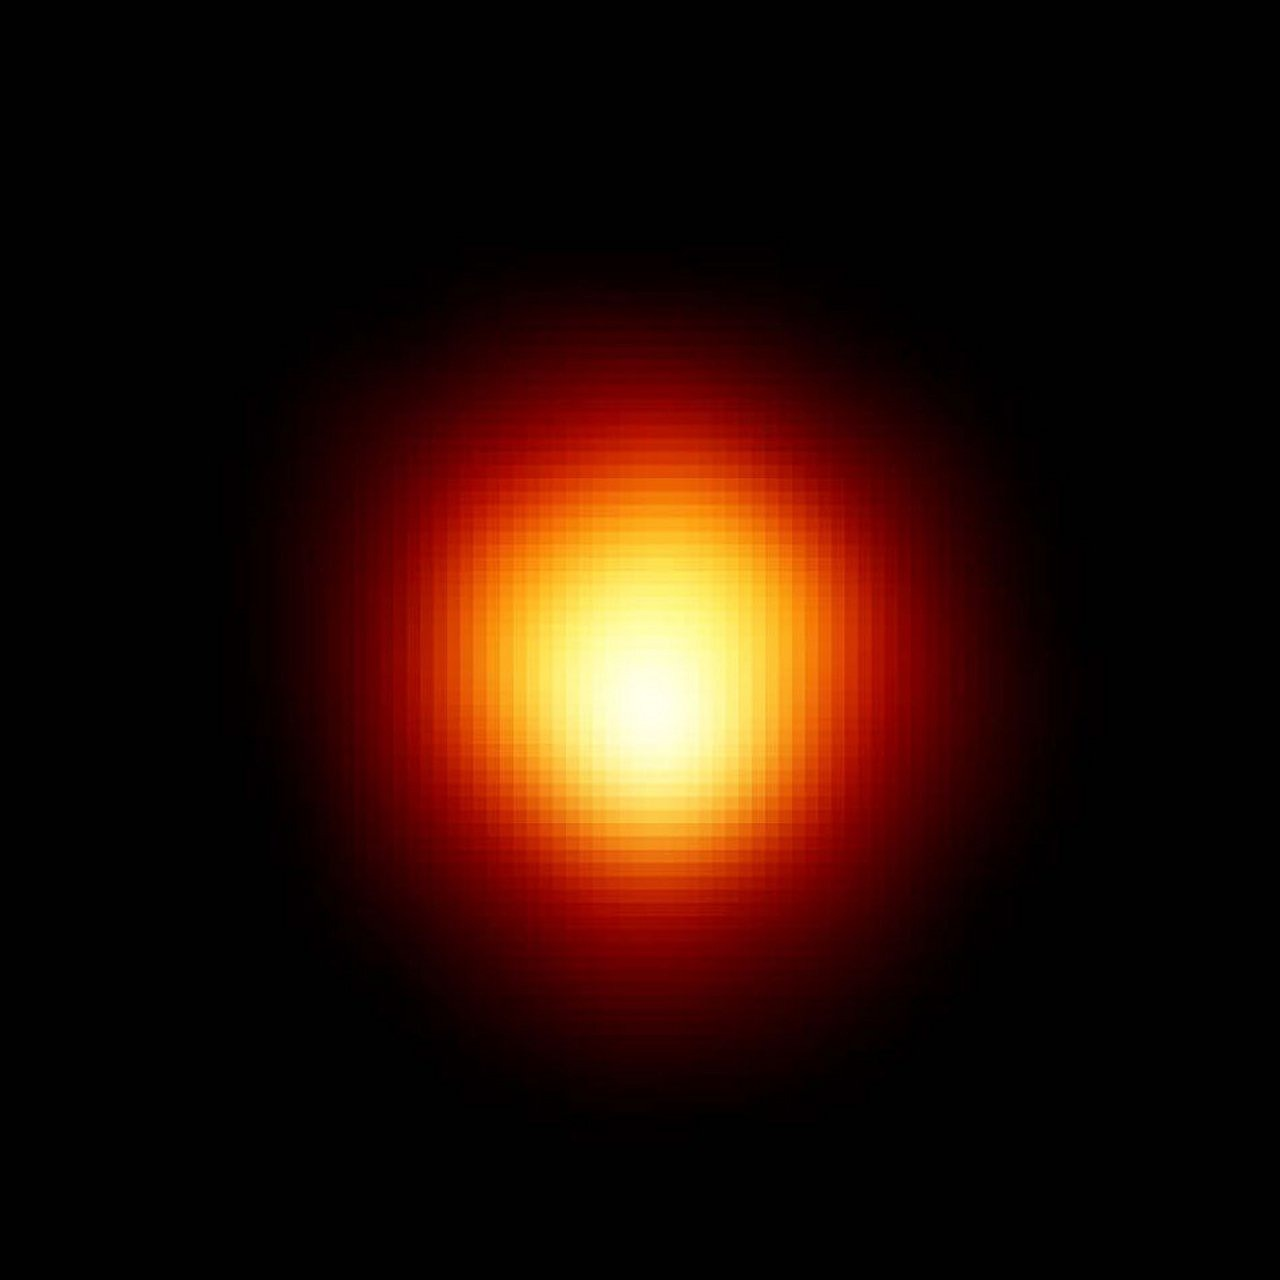 betelgeuse star red giant free photo